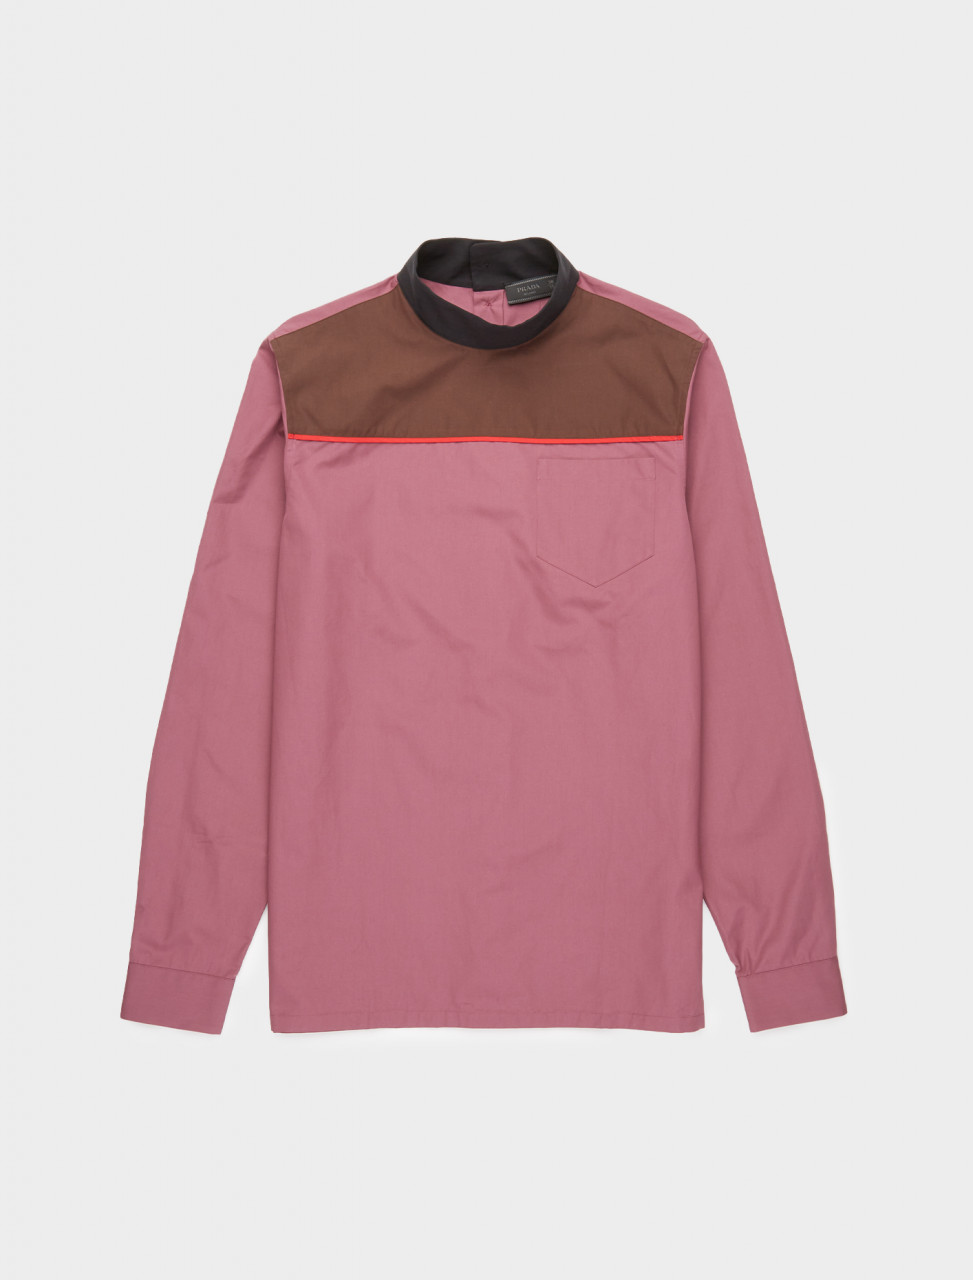 242-UCN319-1XV2-F01C3-S-202 PRADA COLOUR PANEL HIGH NECK LONG SLEEVE